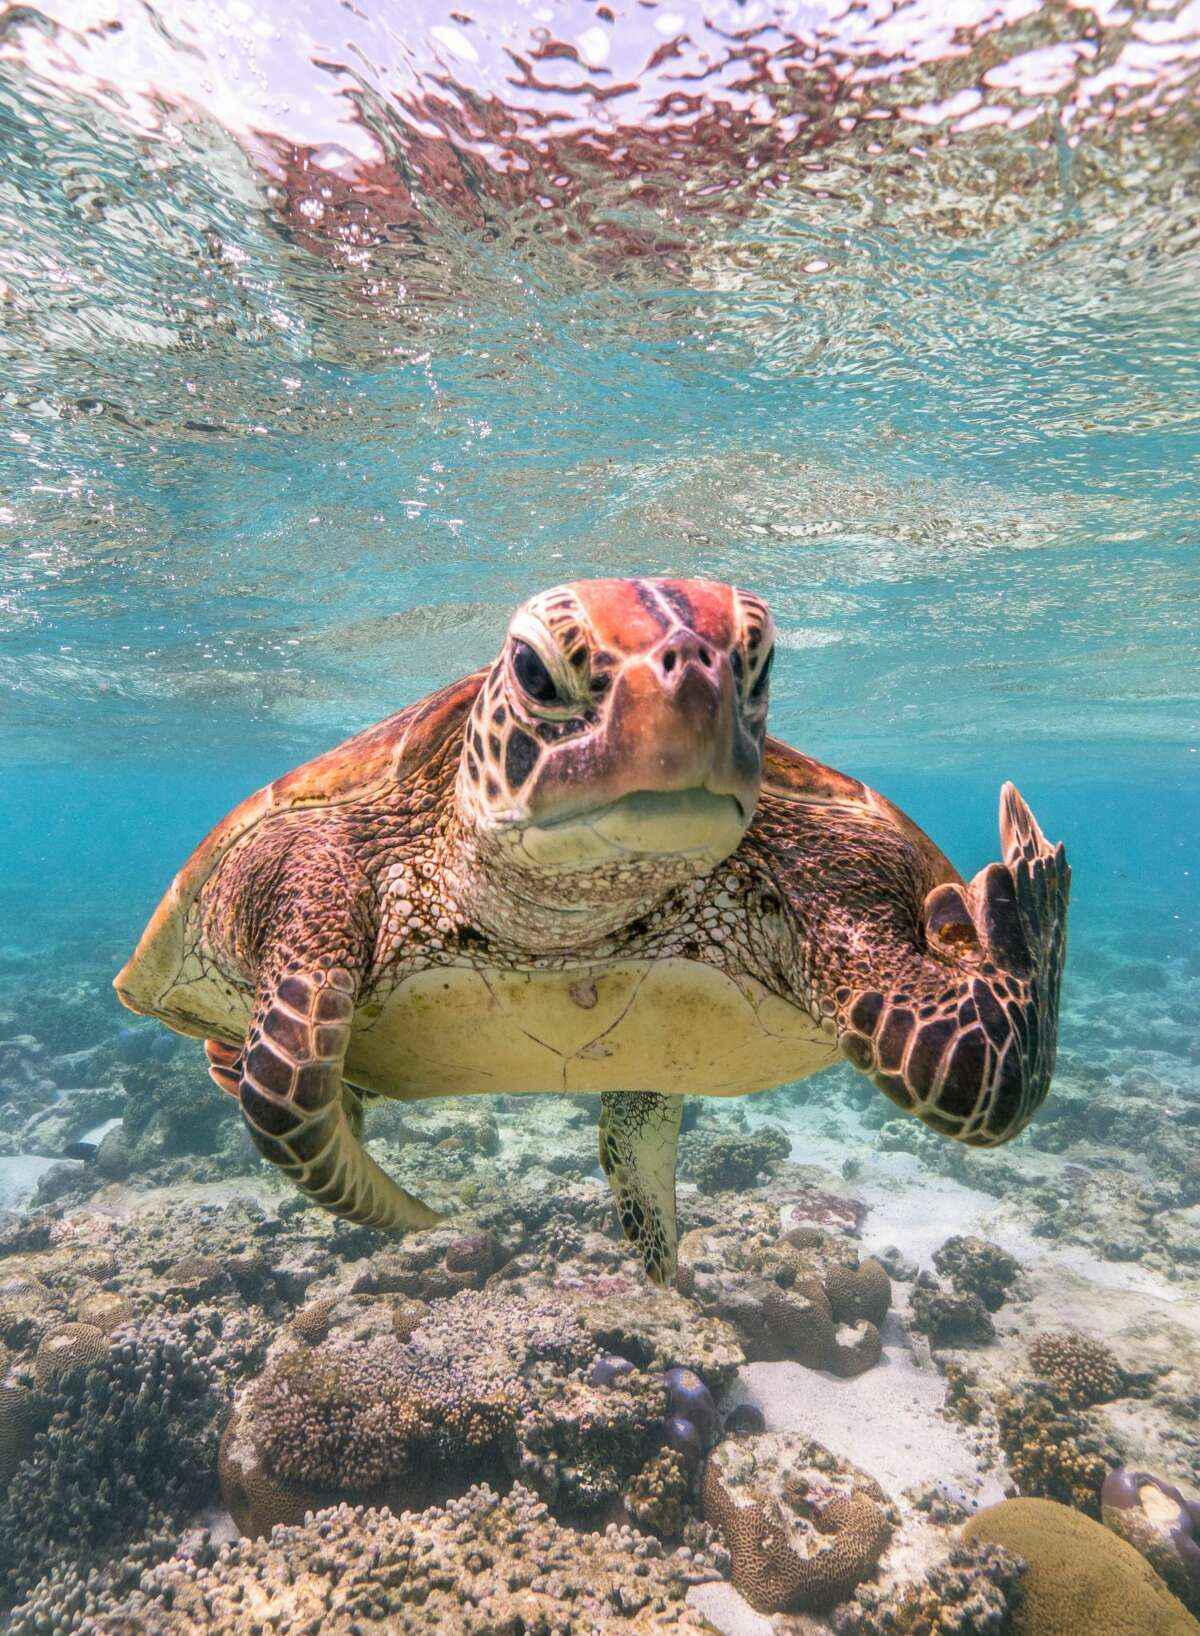 Eff you, paparazzo! This photo of a sea turtle off Lady Elliot Island on the South Queensland coast won the top prize in the 2020 Comedy Wildlife Photography Awards.